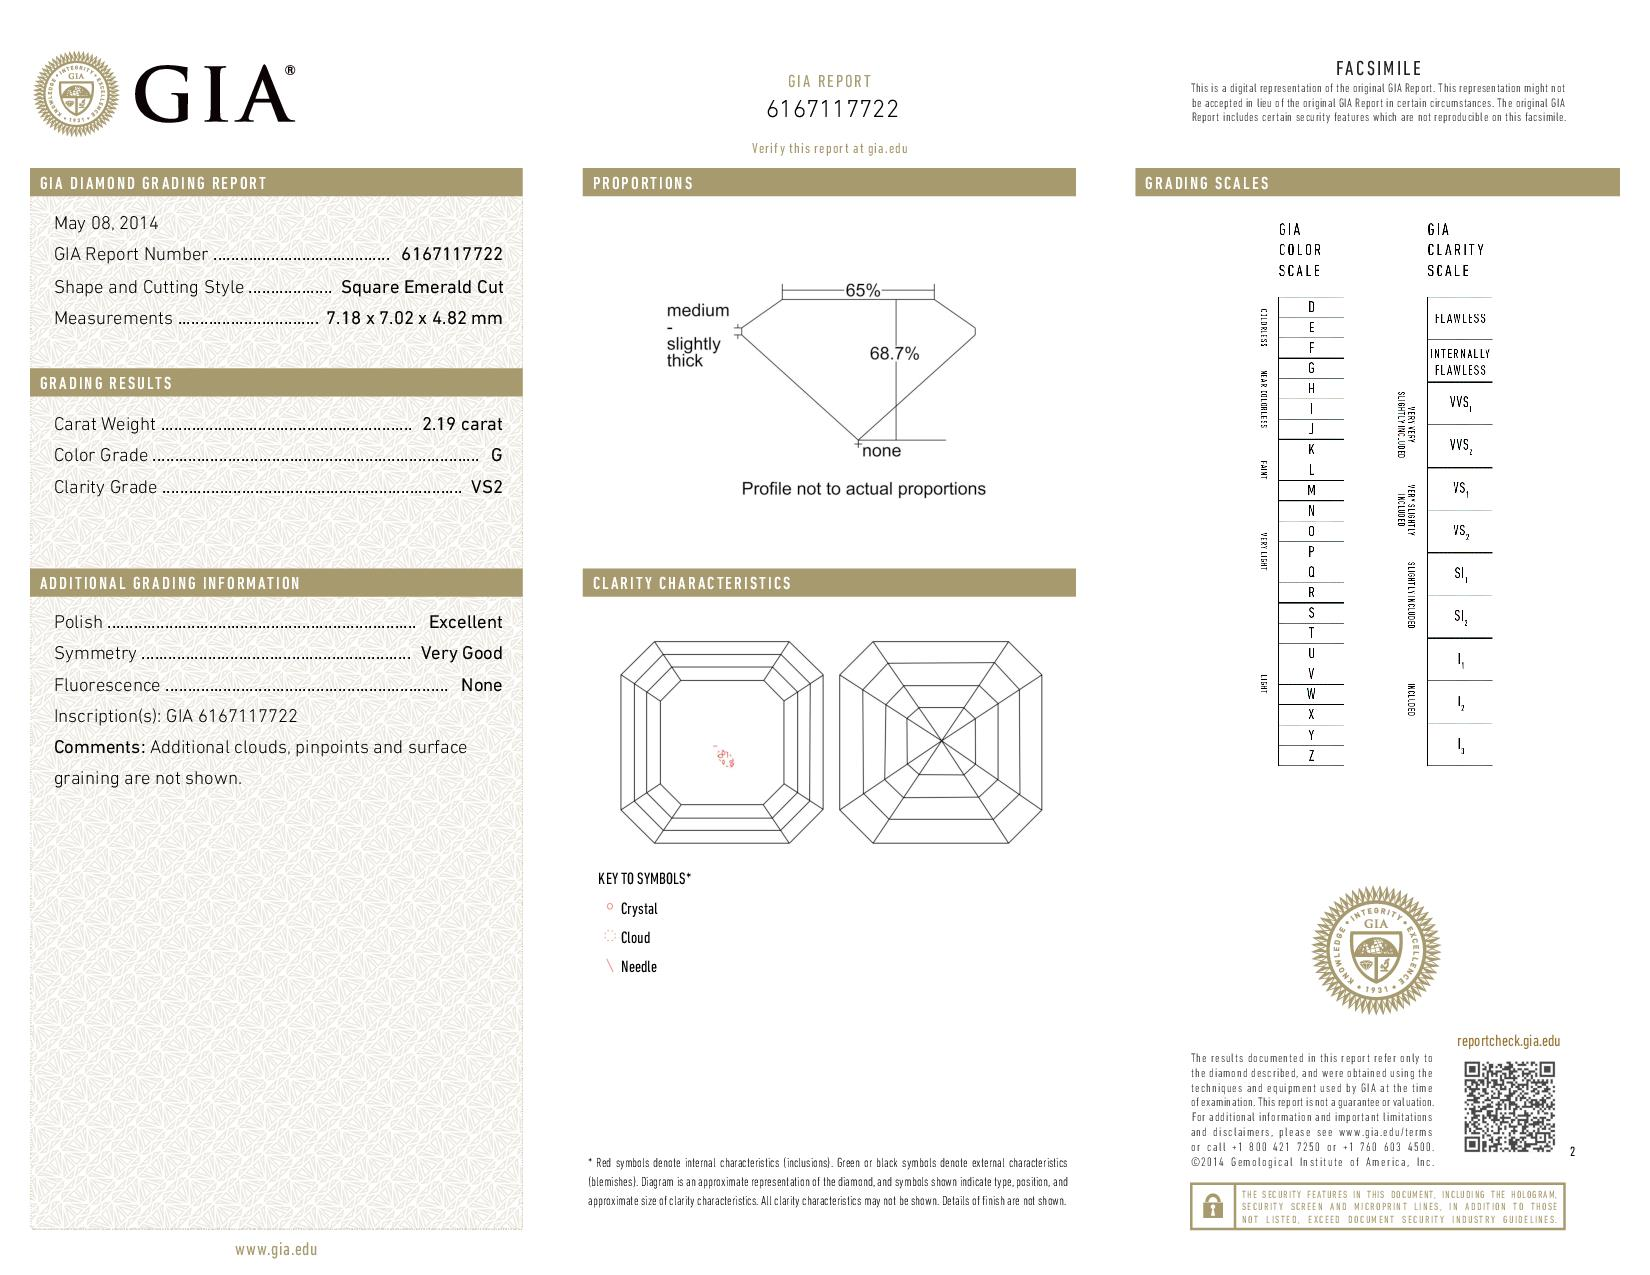 This is a 2.19 carat asscher shape, G color, VS2 clarity natural diamond accompanied by a GIA grading report.